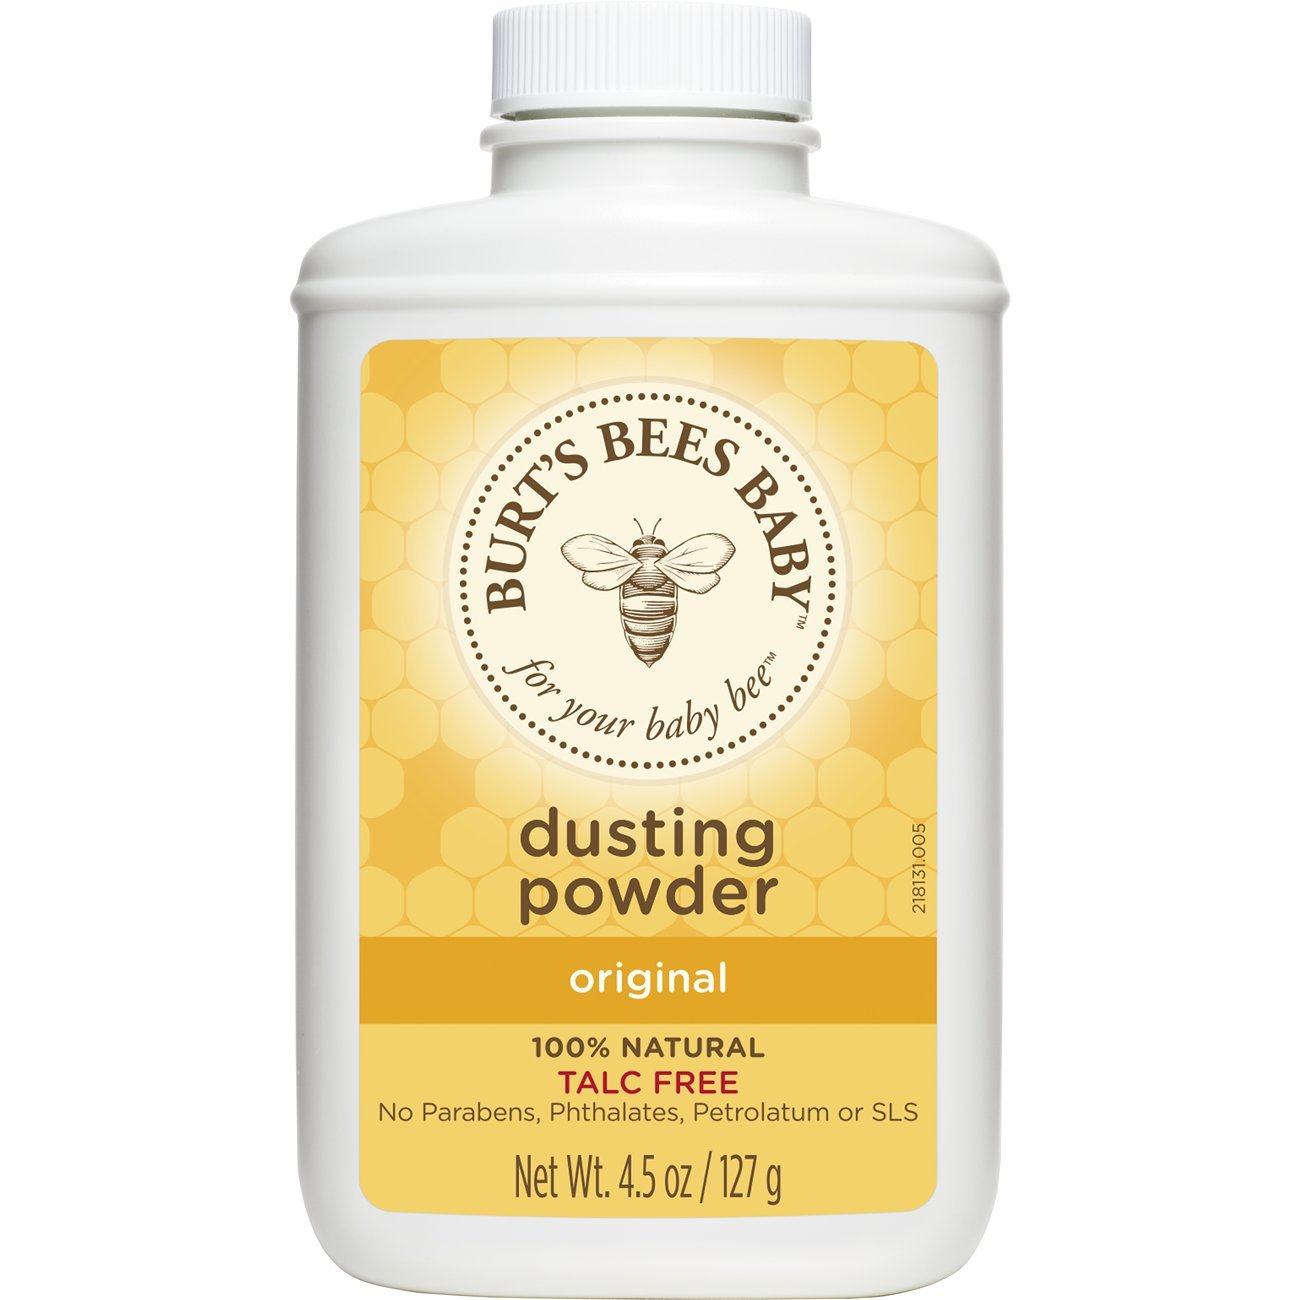 Burt's Bees: Baby Bee Dusting Powder, 4.5 oz Burt's Bees 36599-10